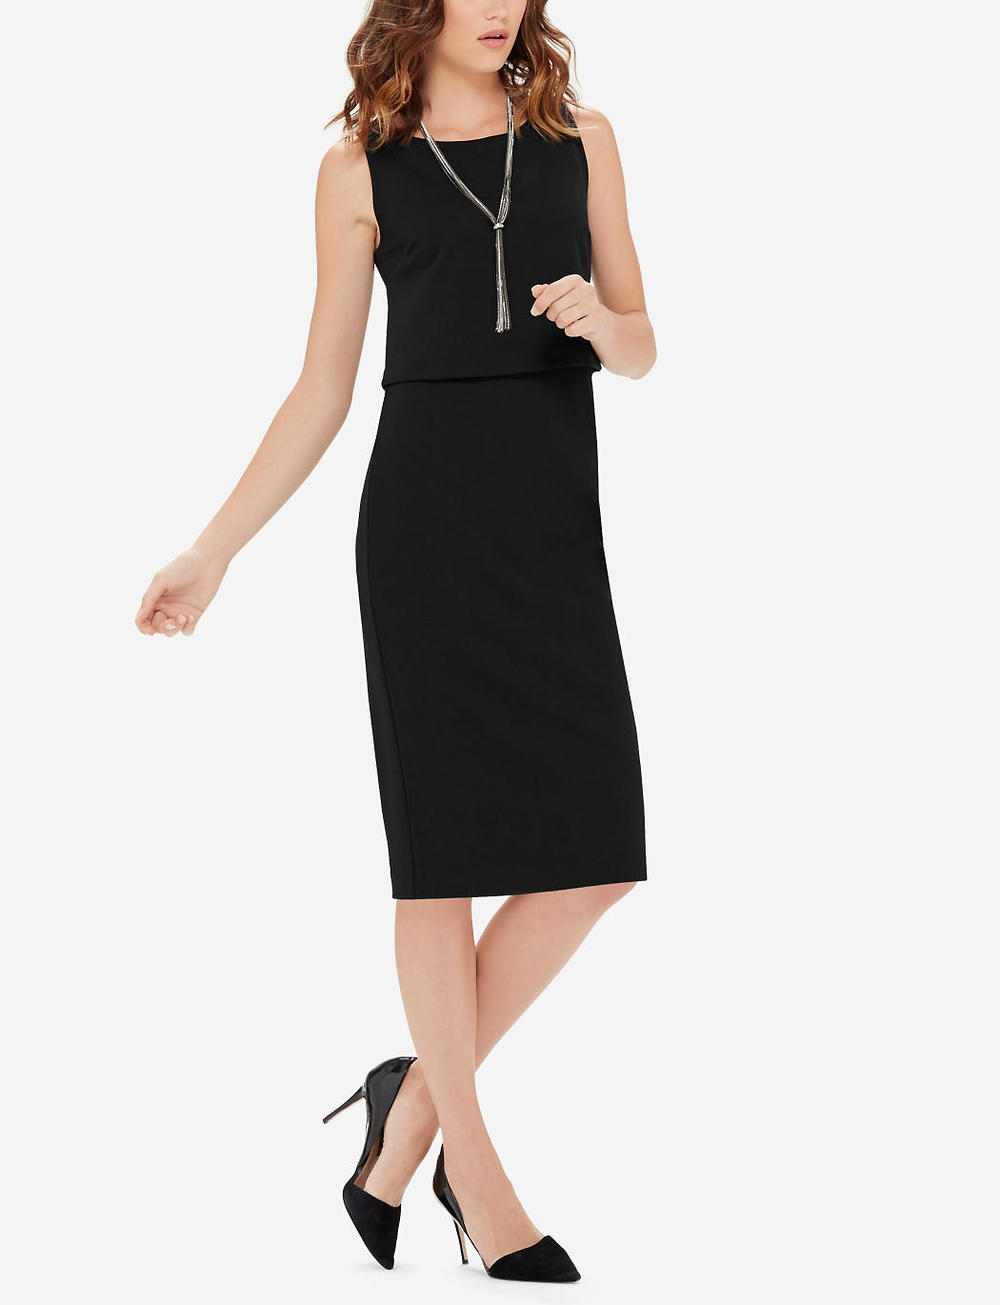 Tall Crop Top Sheath Dress. The Limited. Was: $89 Now: $62.